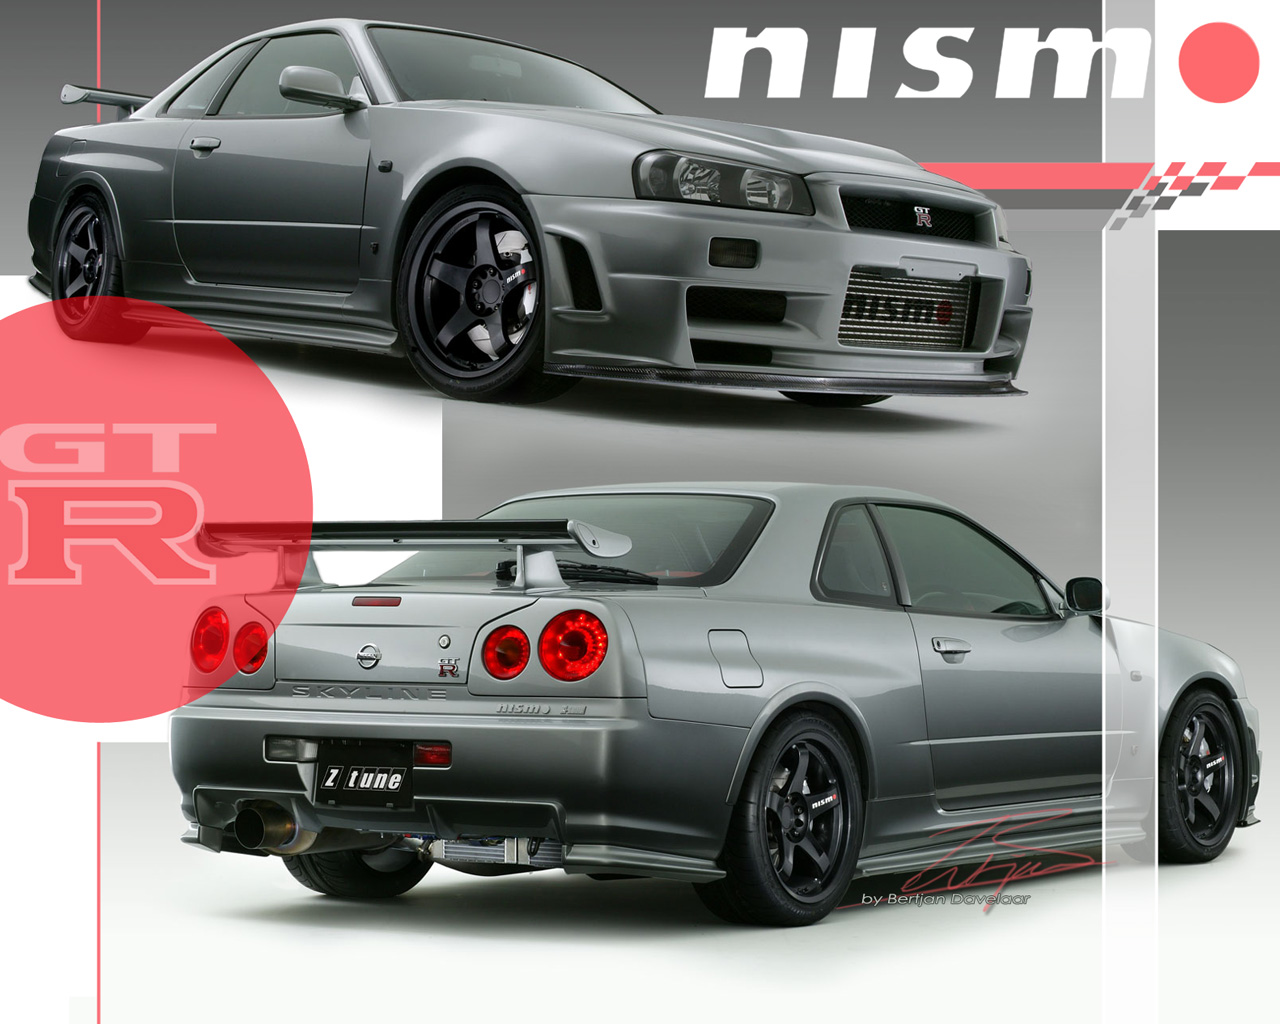 Nissan R34 GTR. View Download Wallpaper. 1280x1024. Comments